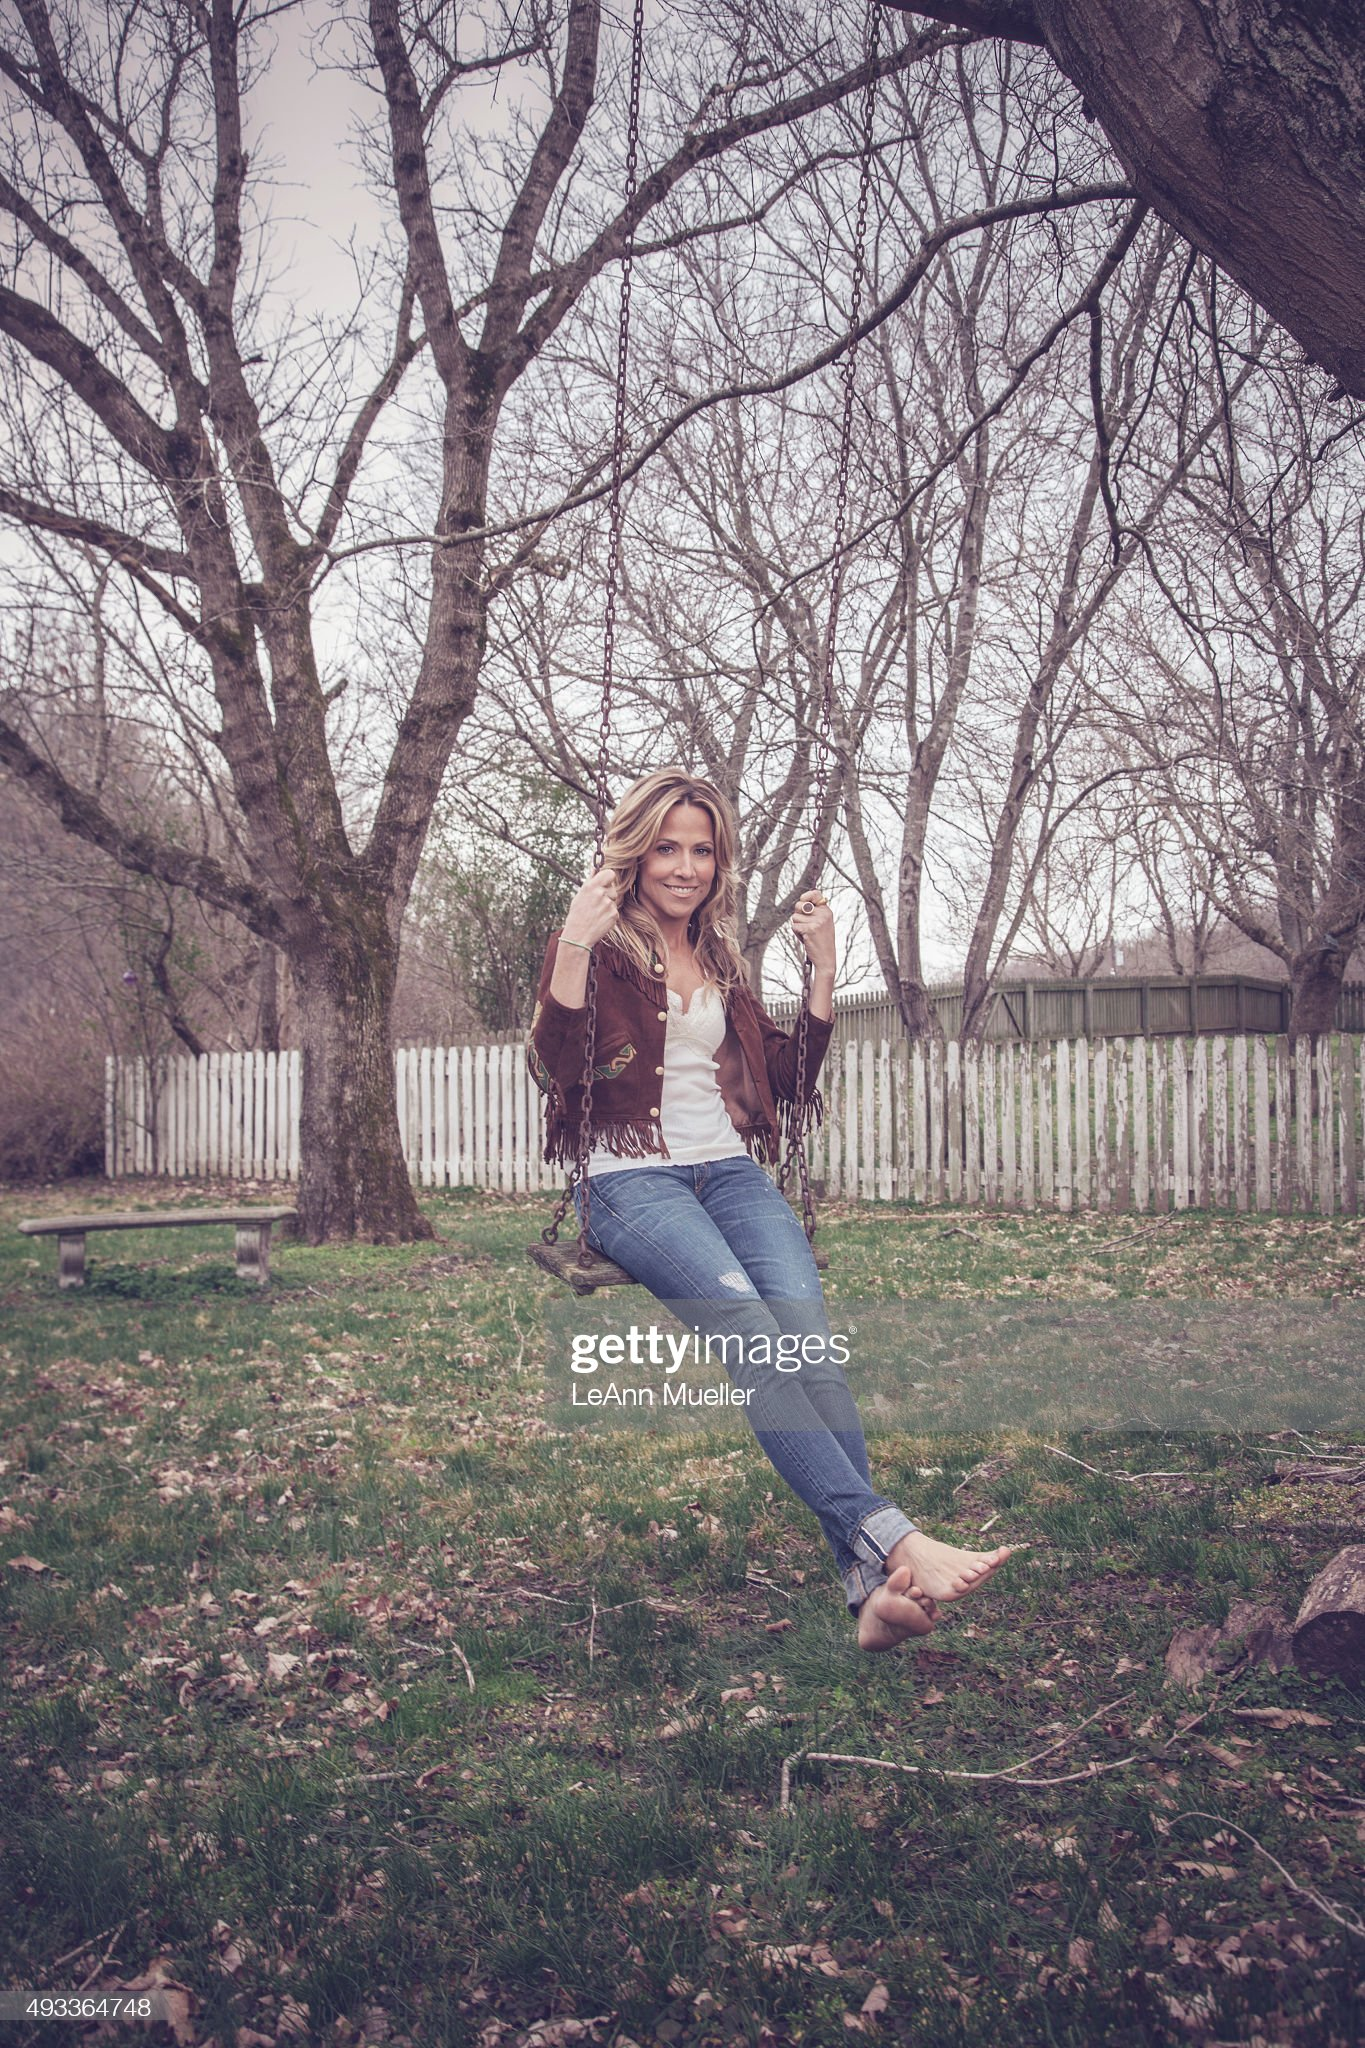 https://media.gettyimages.com/photos/singer-sheryl-crow-is-photographed-for-the-hollywood-reporter-on-13-picture-id493364748?s=2048x2048